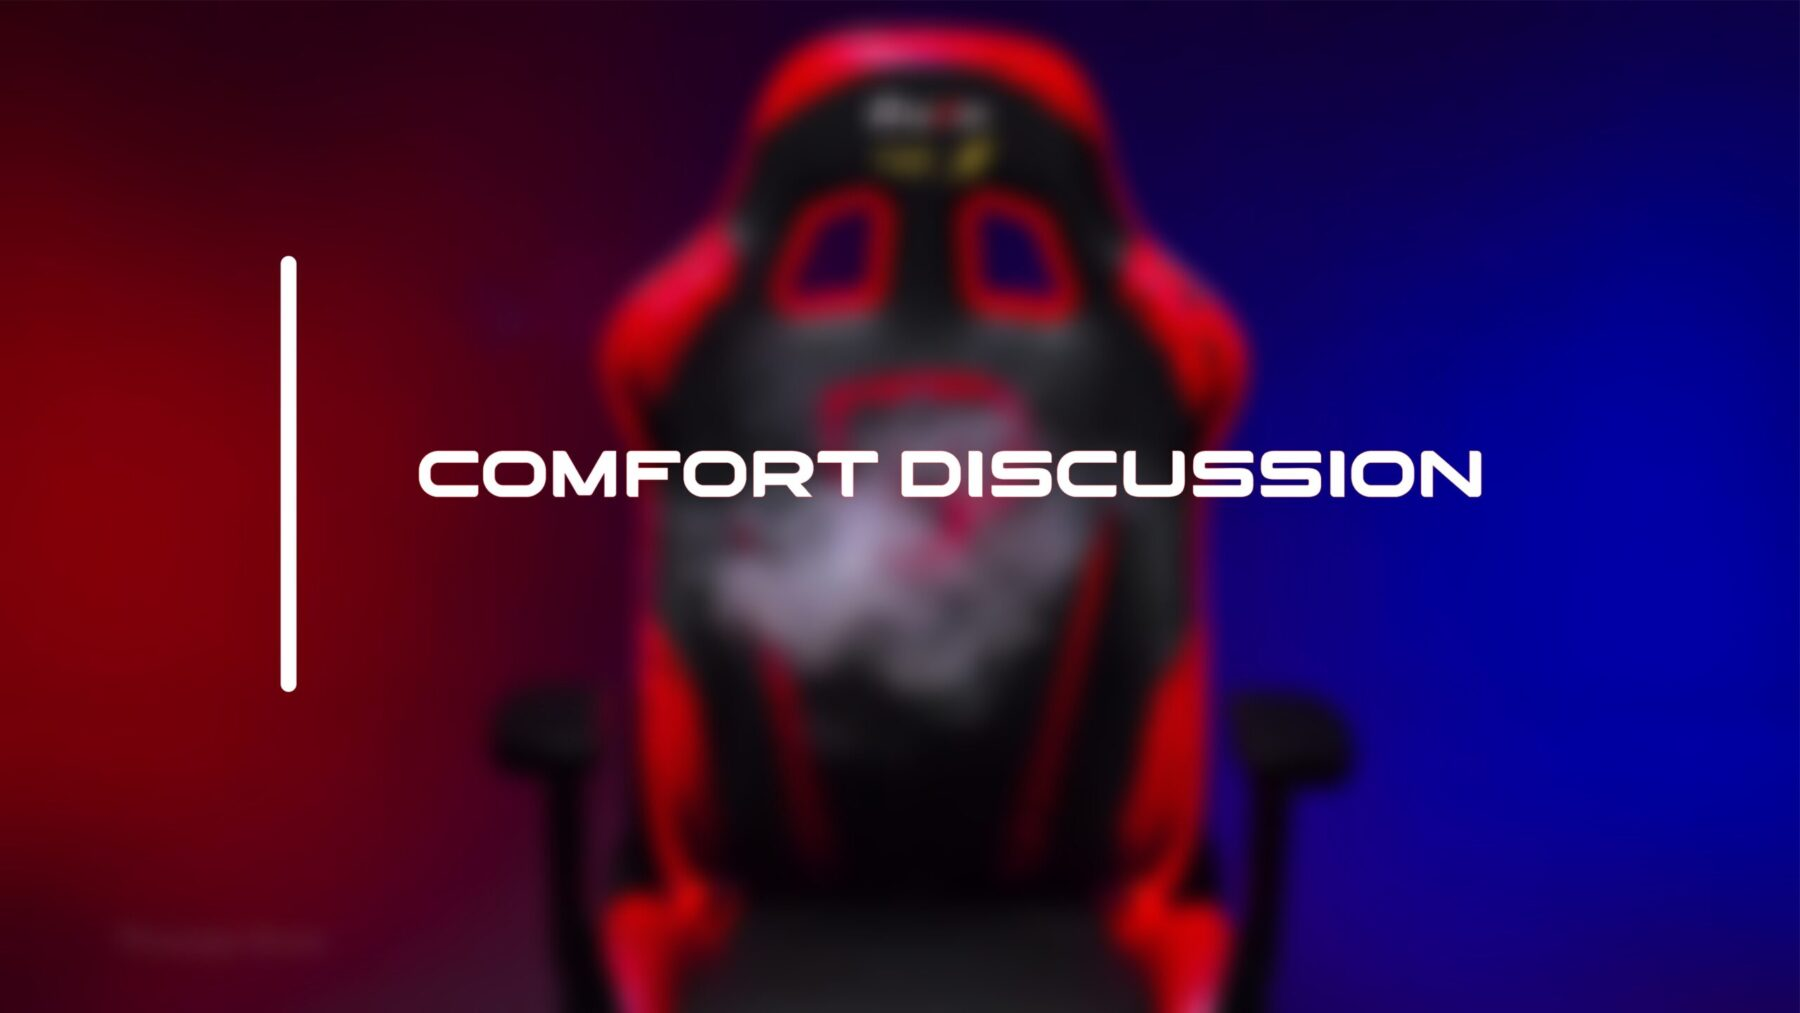 comfort and discussion